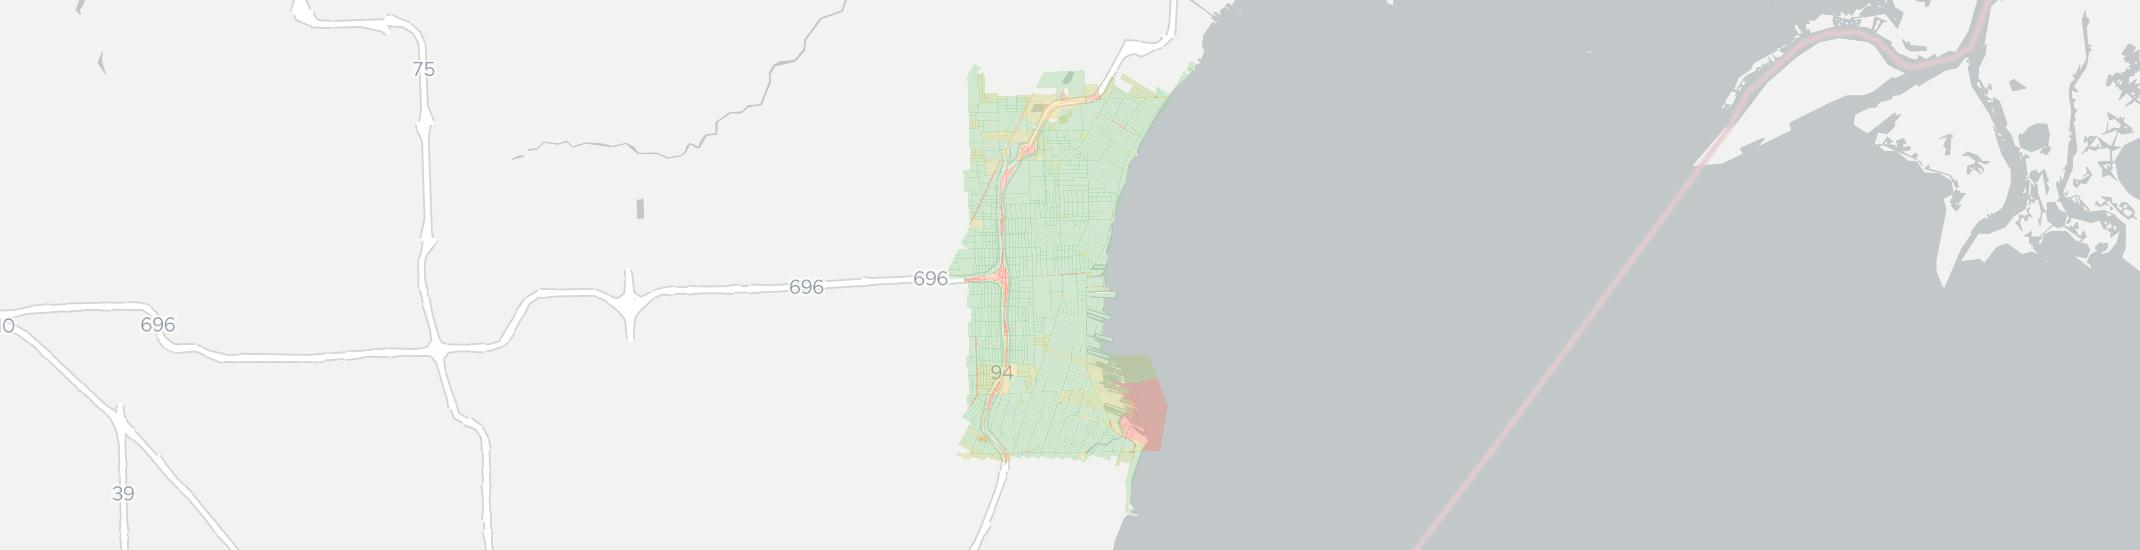 Saint Clair Shores Internet Competition Map. Click for interactive map.